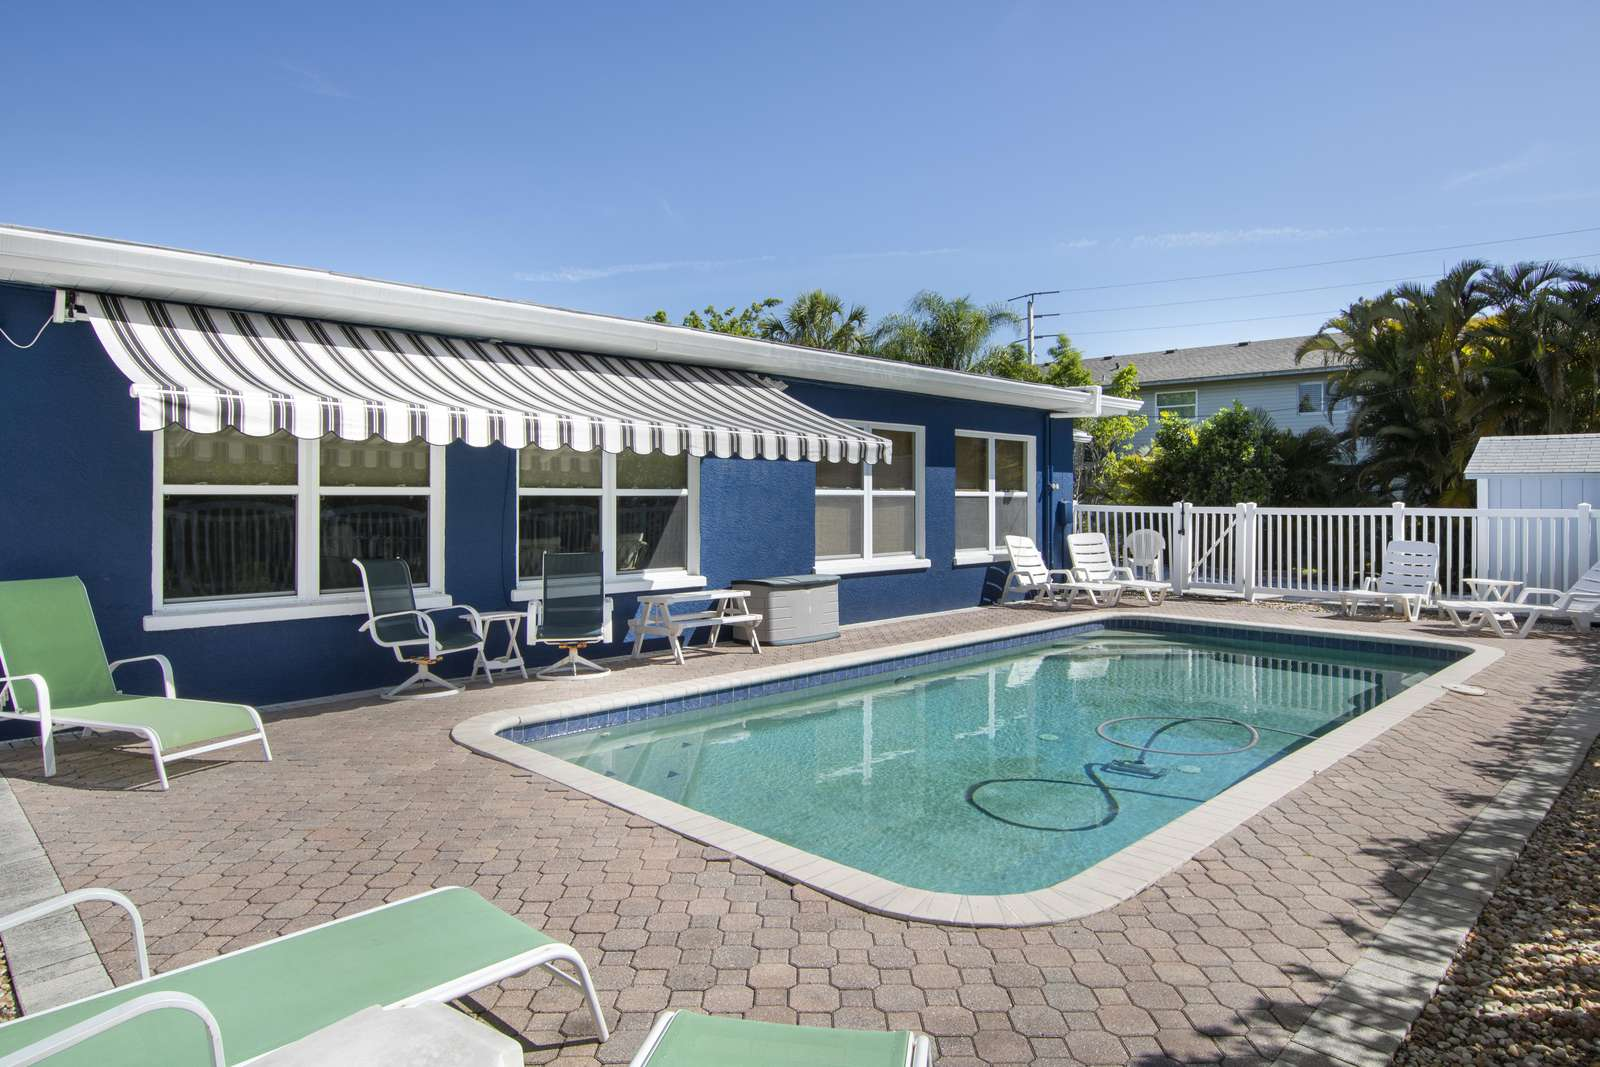 Heated pool and retractable awning